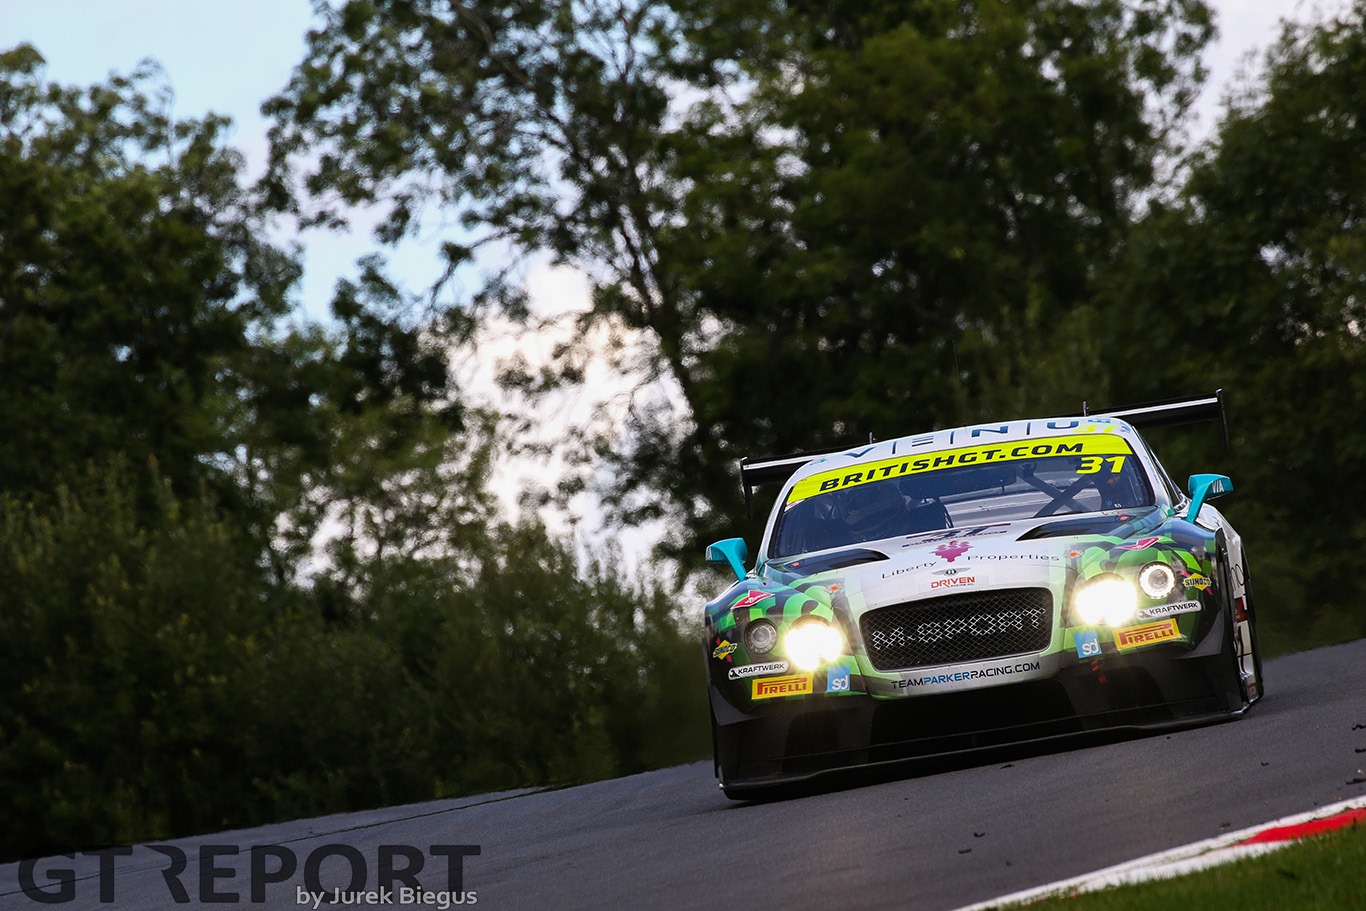 British GT Brands Hatch race report: Heat is on